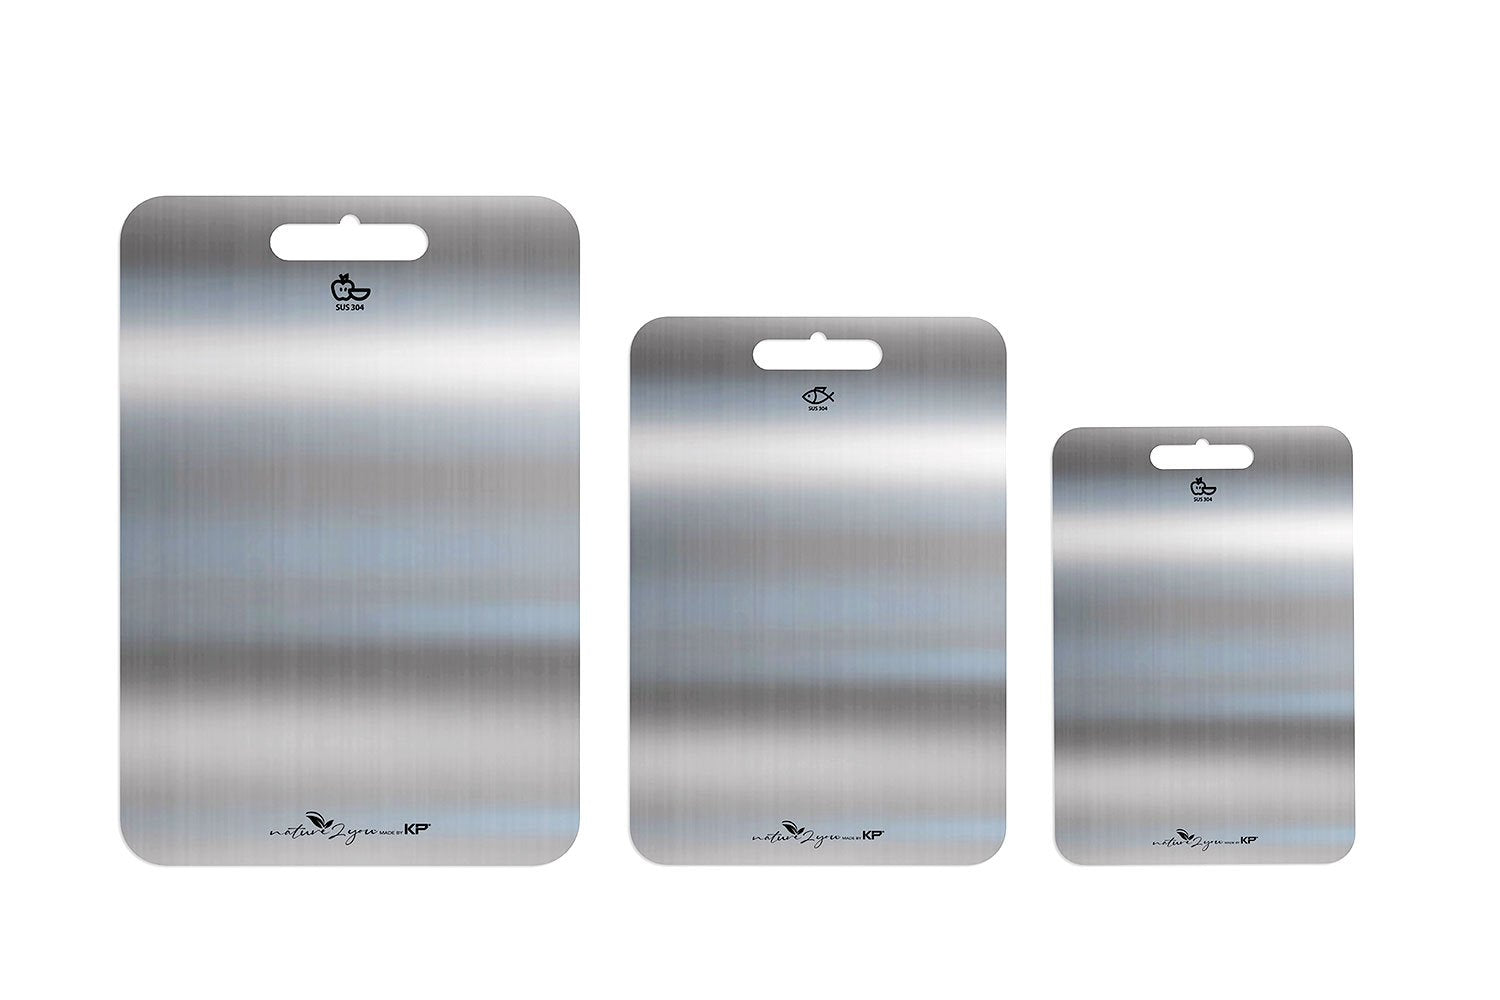 Stainless Steel Cutting Board Set (3 SIZES IN 1 SET)